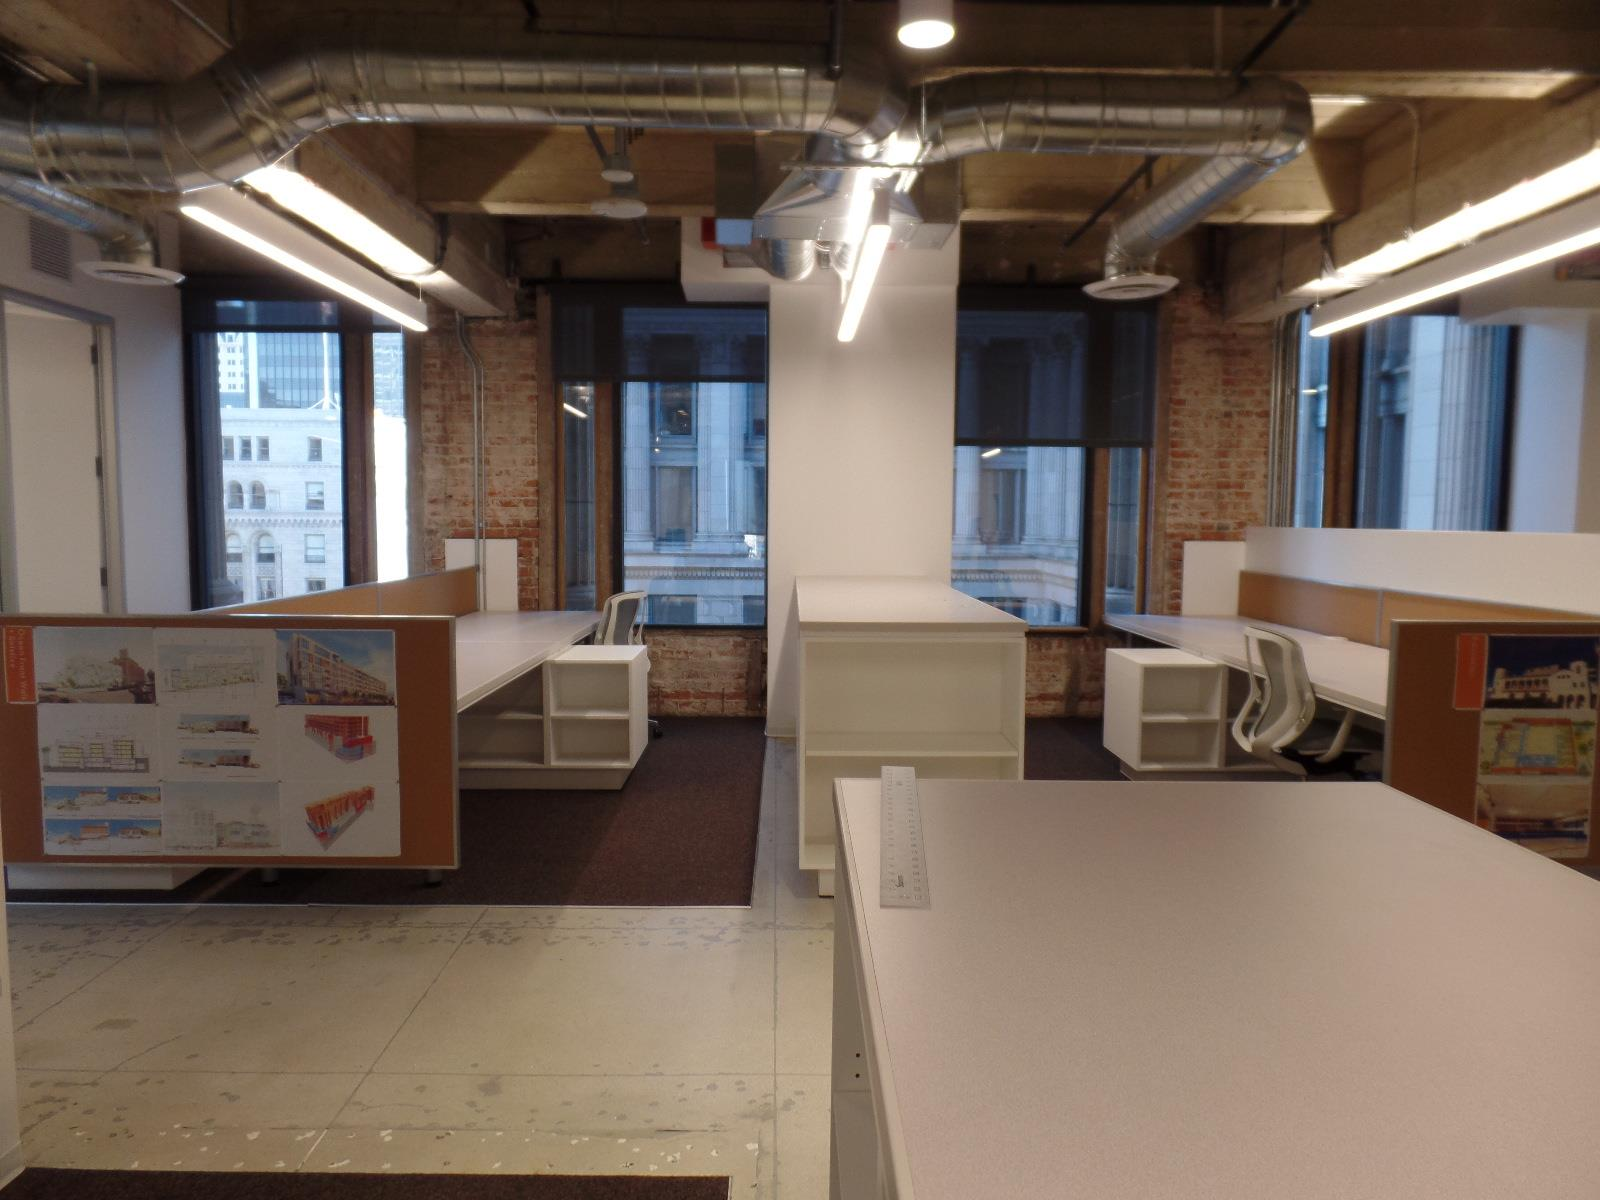 Holmes Structures - 4-6 Desks for Small Business